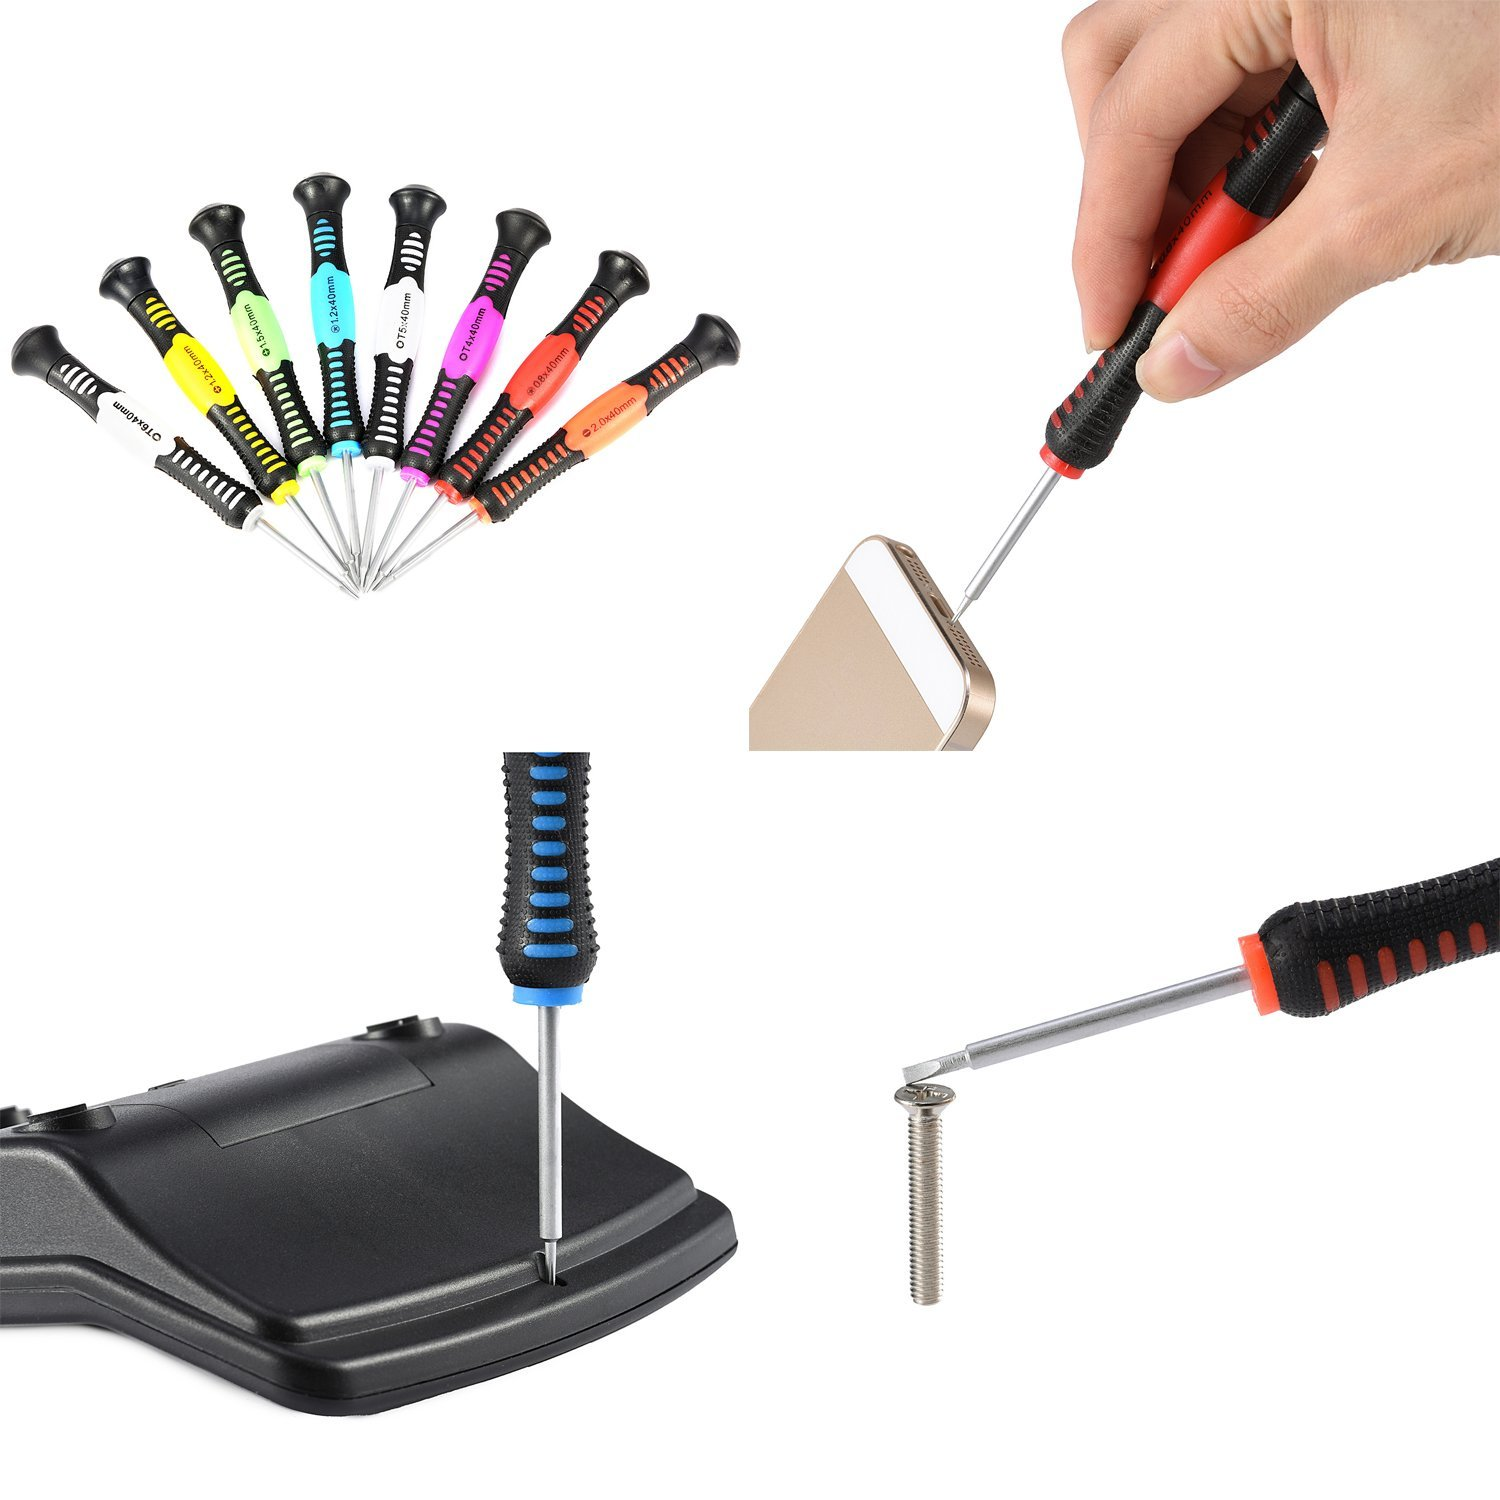 16 in 1 Precision Screwdriver Set,JACKYLED Repair Tool Kit for iPad iPhone /& Other Devices JACKY LED JK129-16in1TK